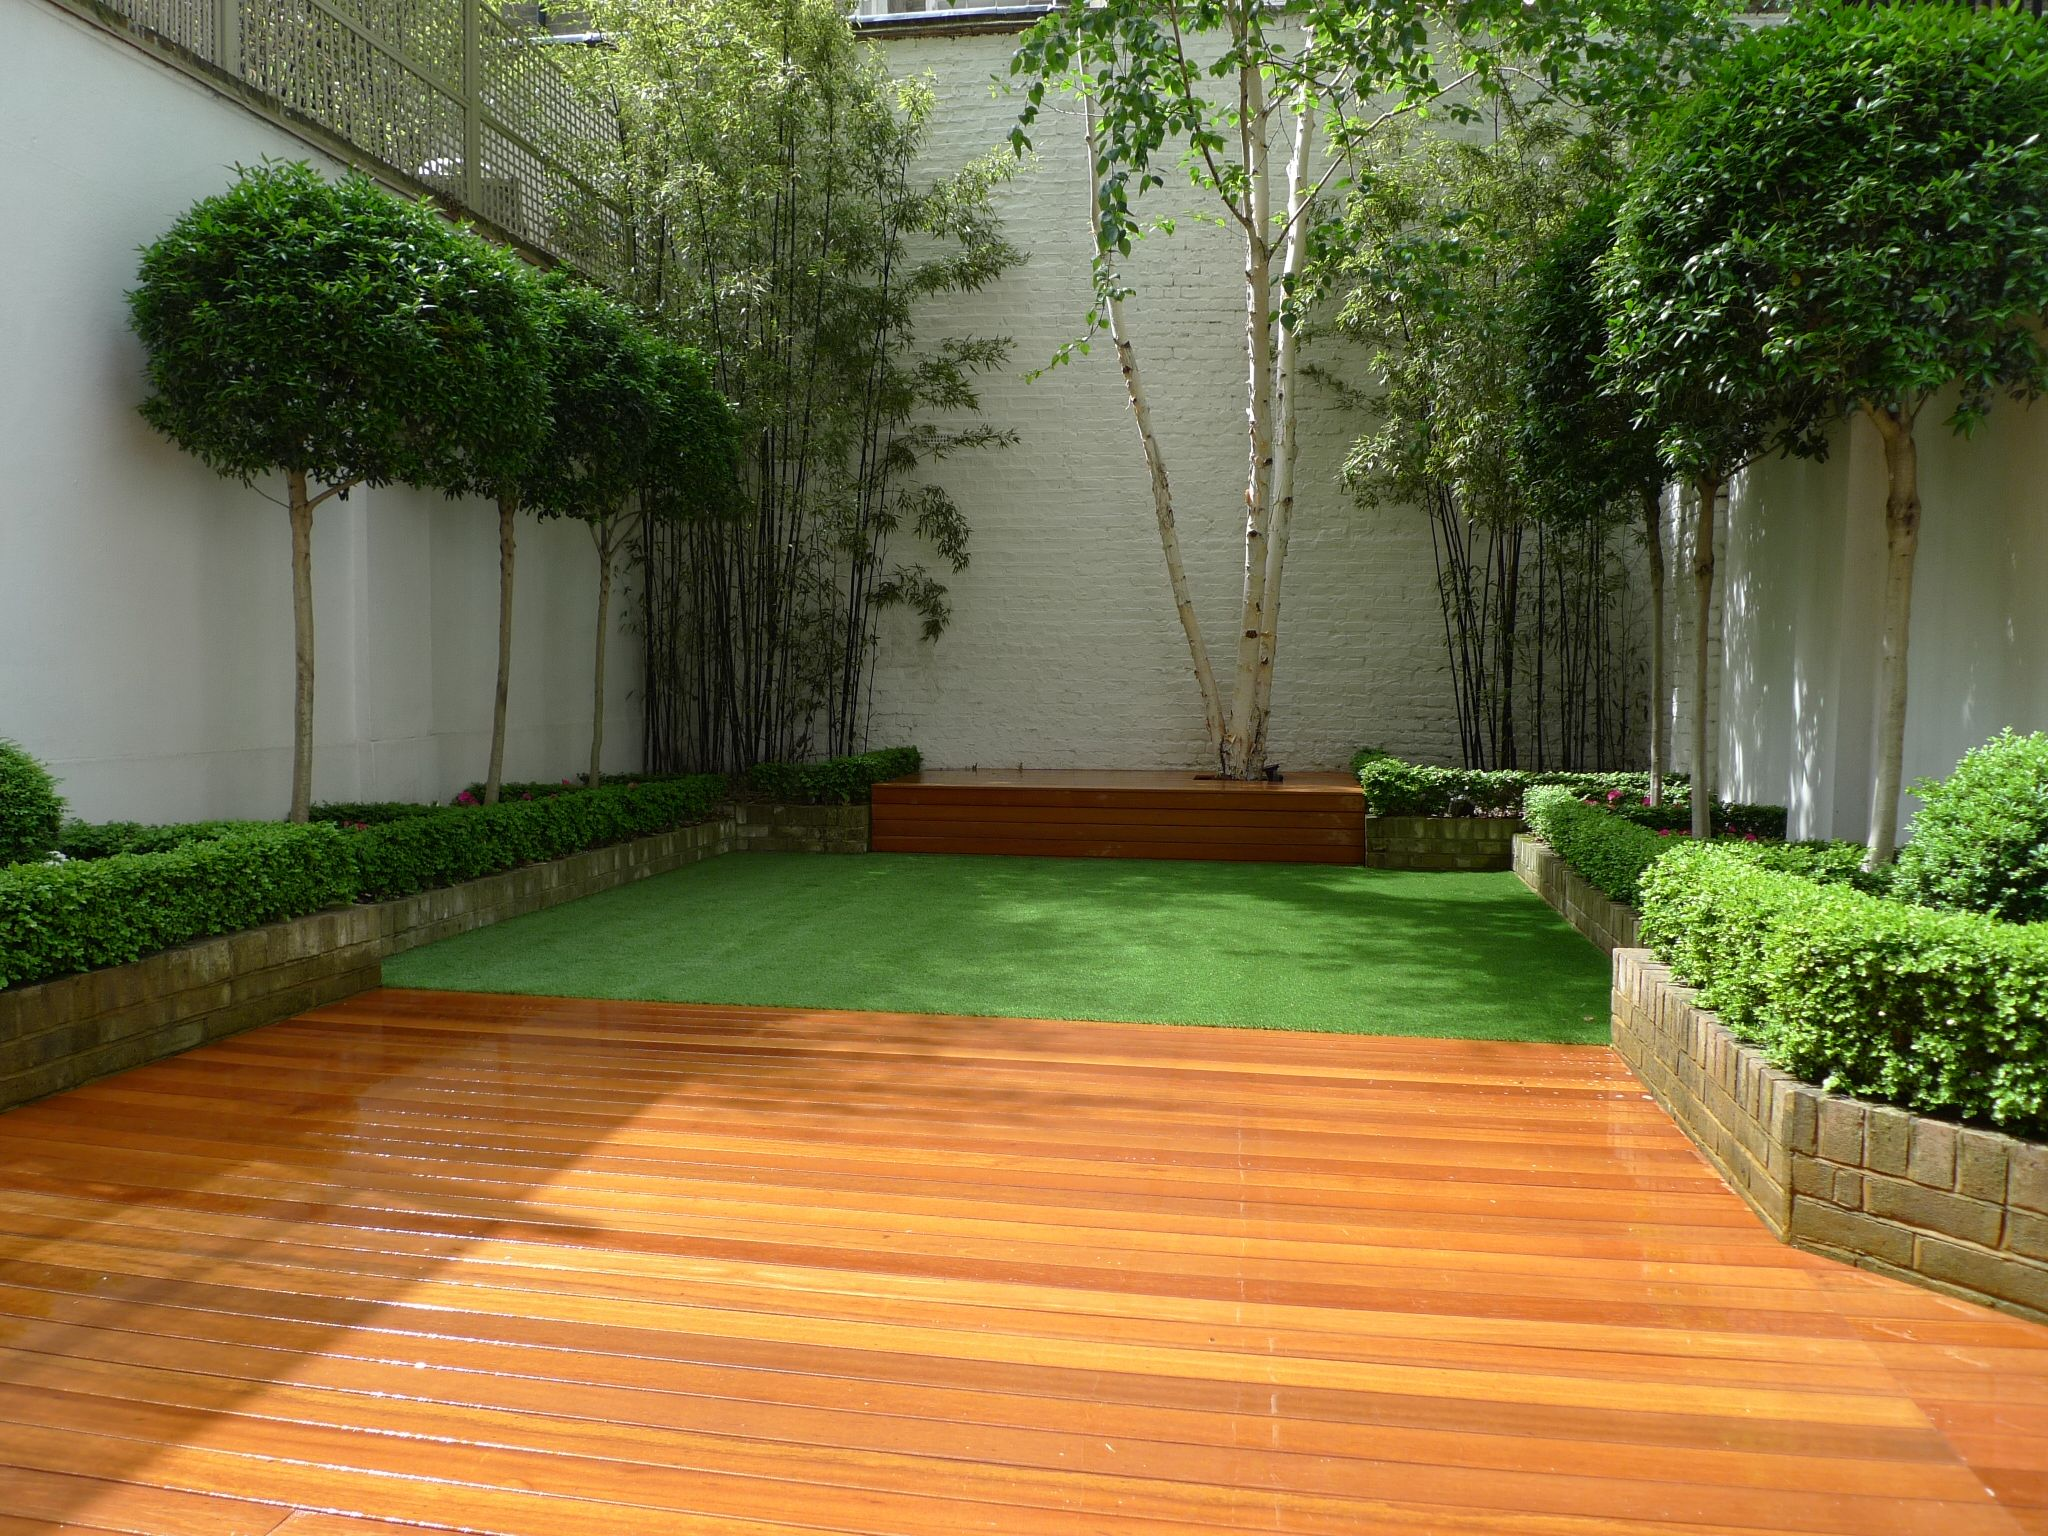 Topiary Garden Design Ideas Part - 22: The Picturesque Landscapes In The Gallery Below And The Bamboo Garden  Design Ideas Are Not Pointed At The Plants Themselves But On The Ways To  Use These ...